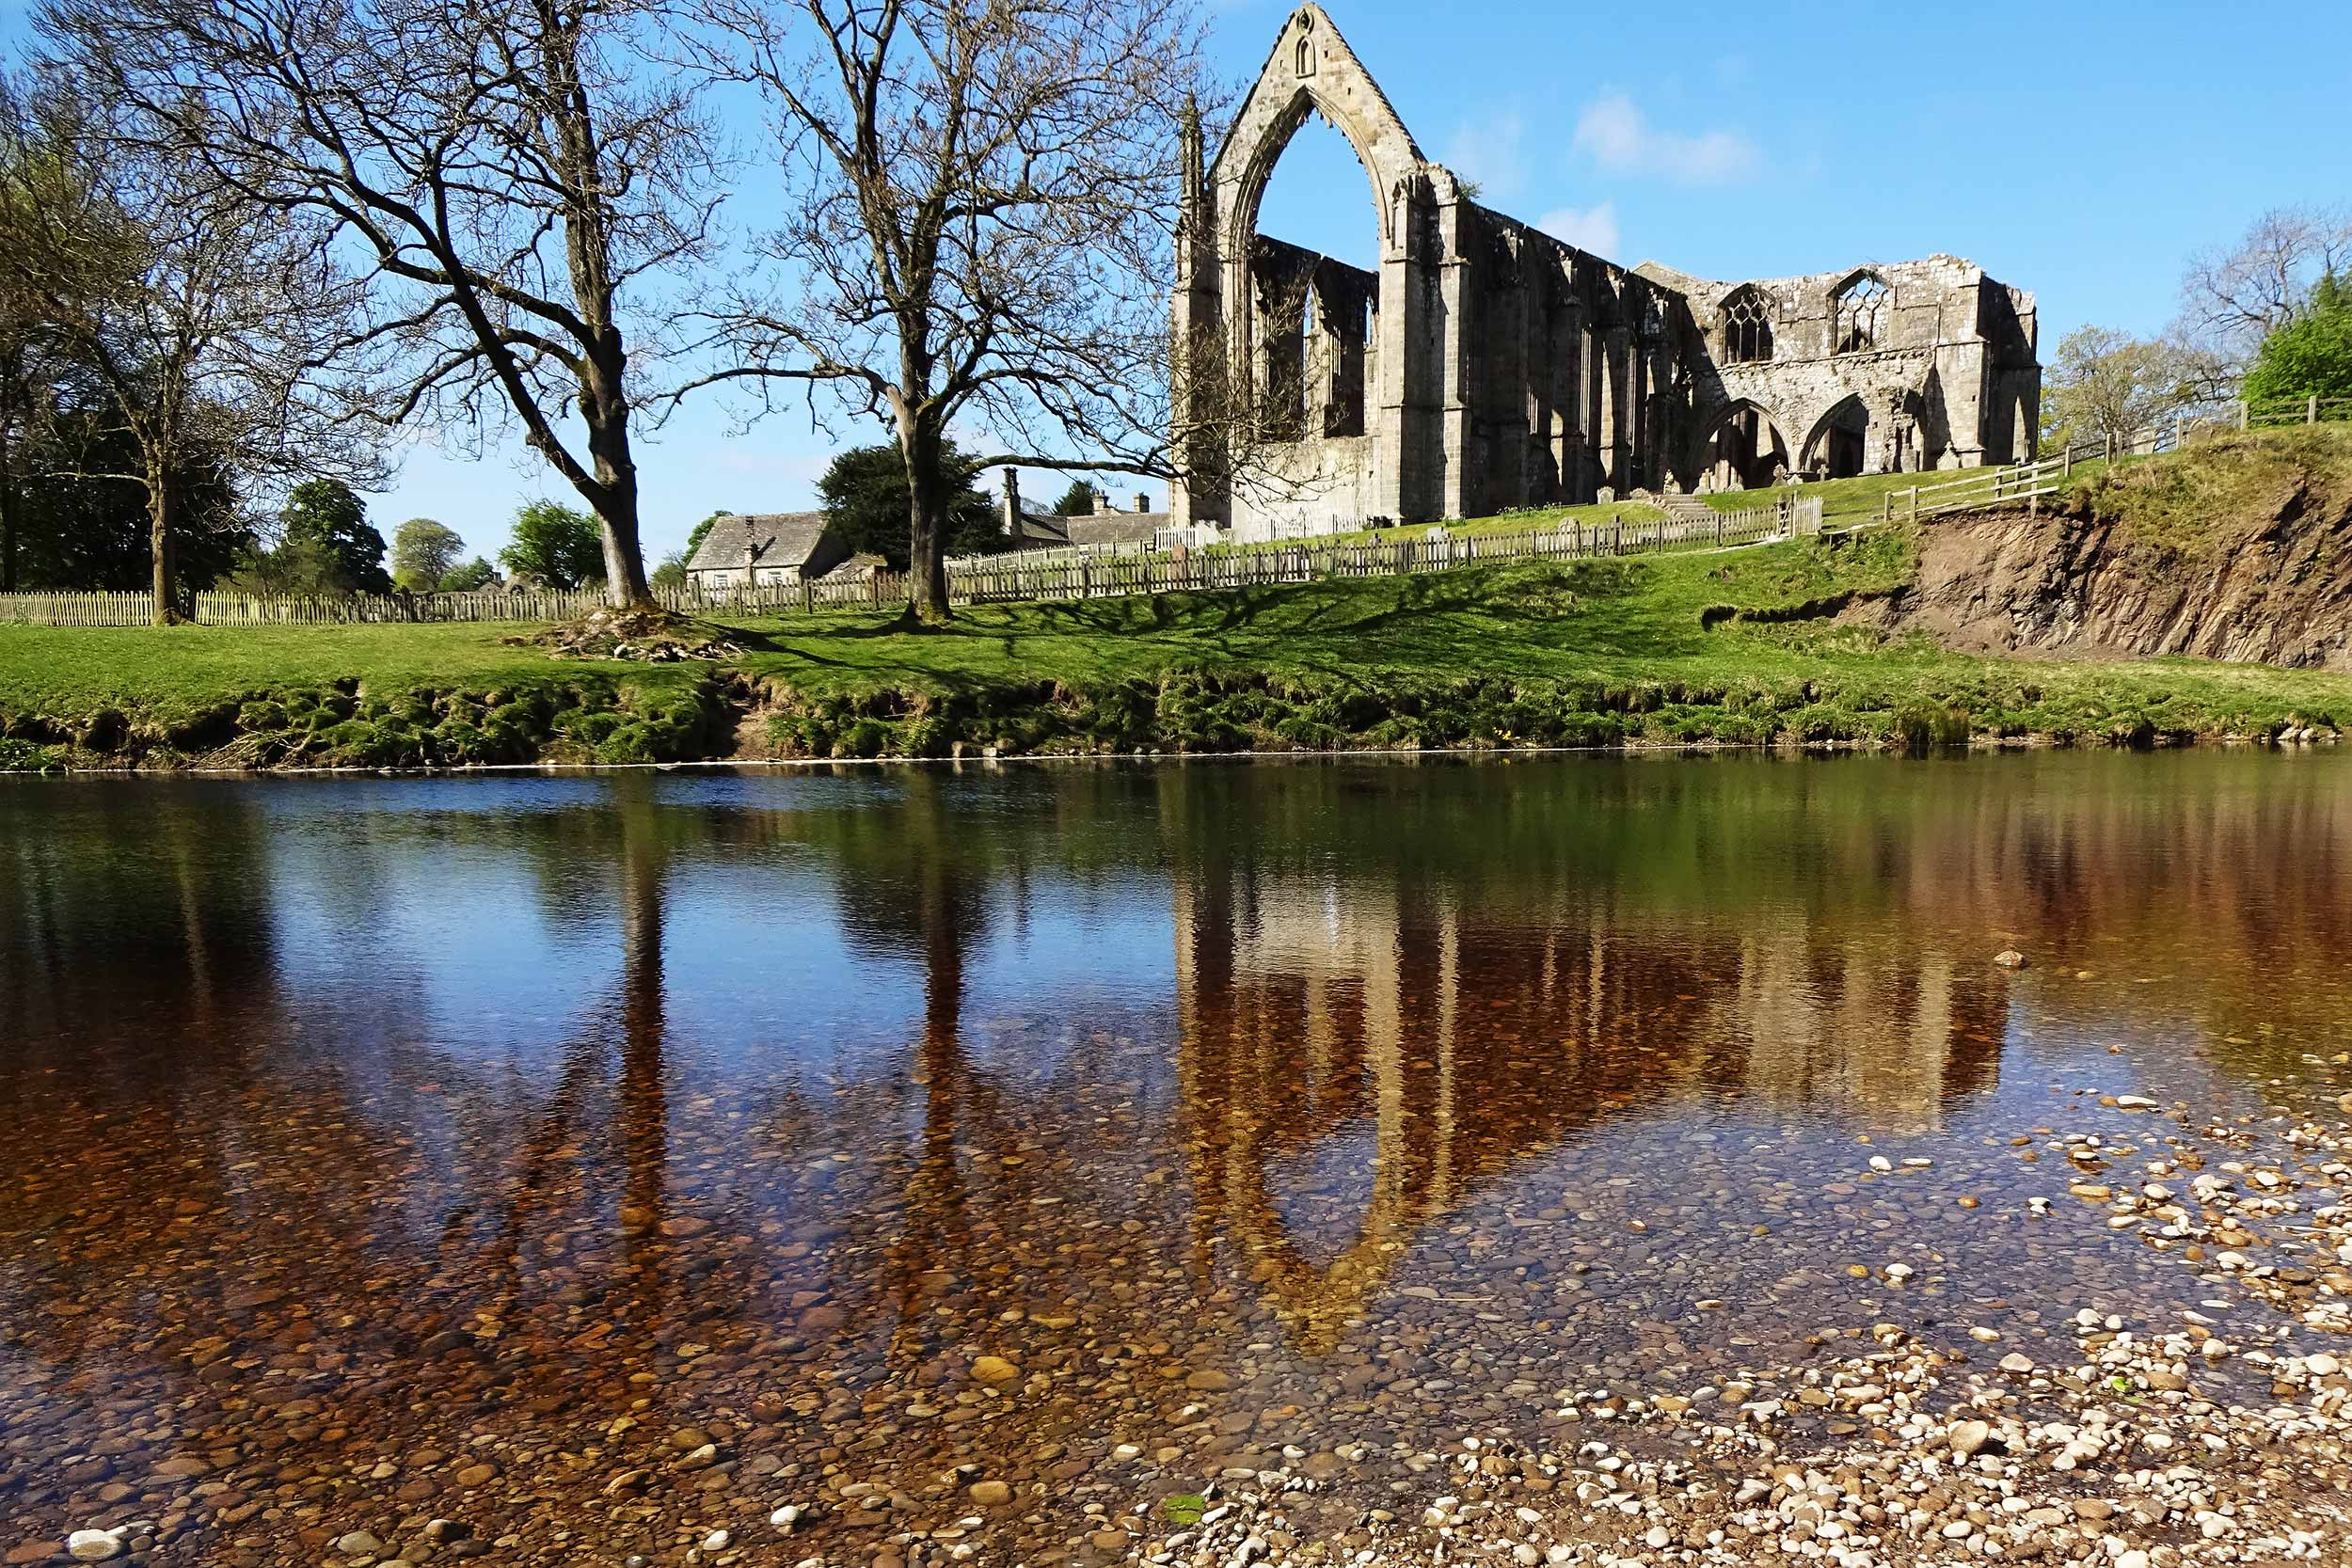 Bolton Priory at Bolton Abbey